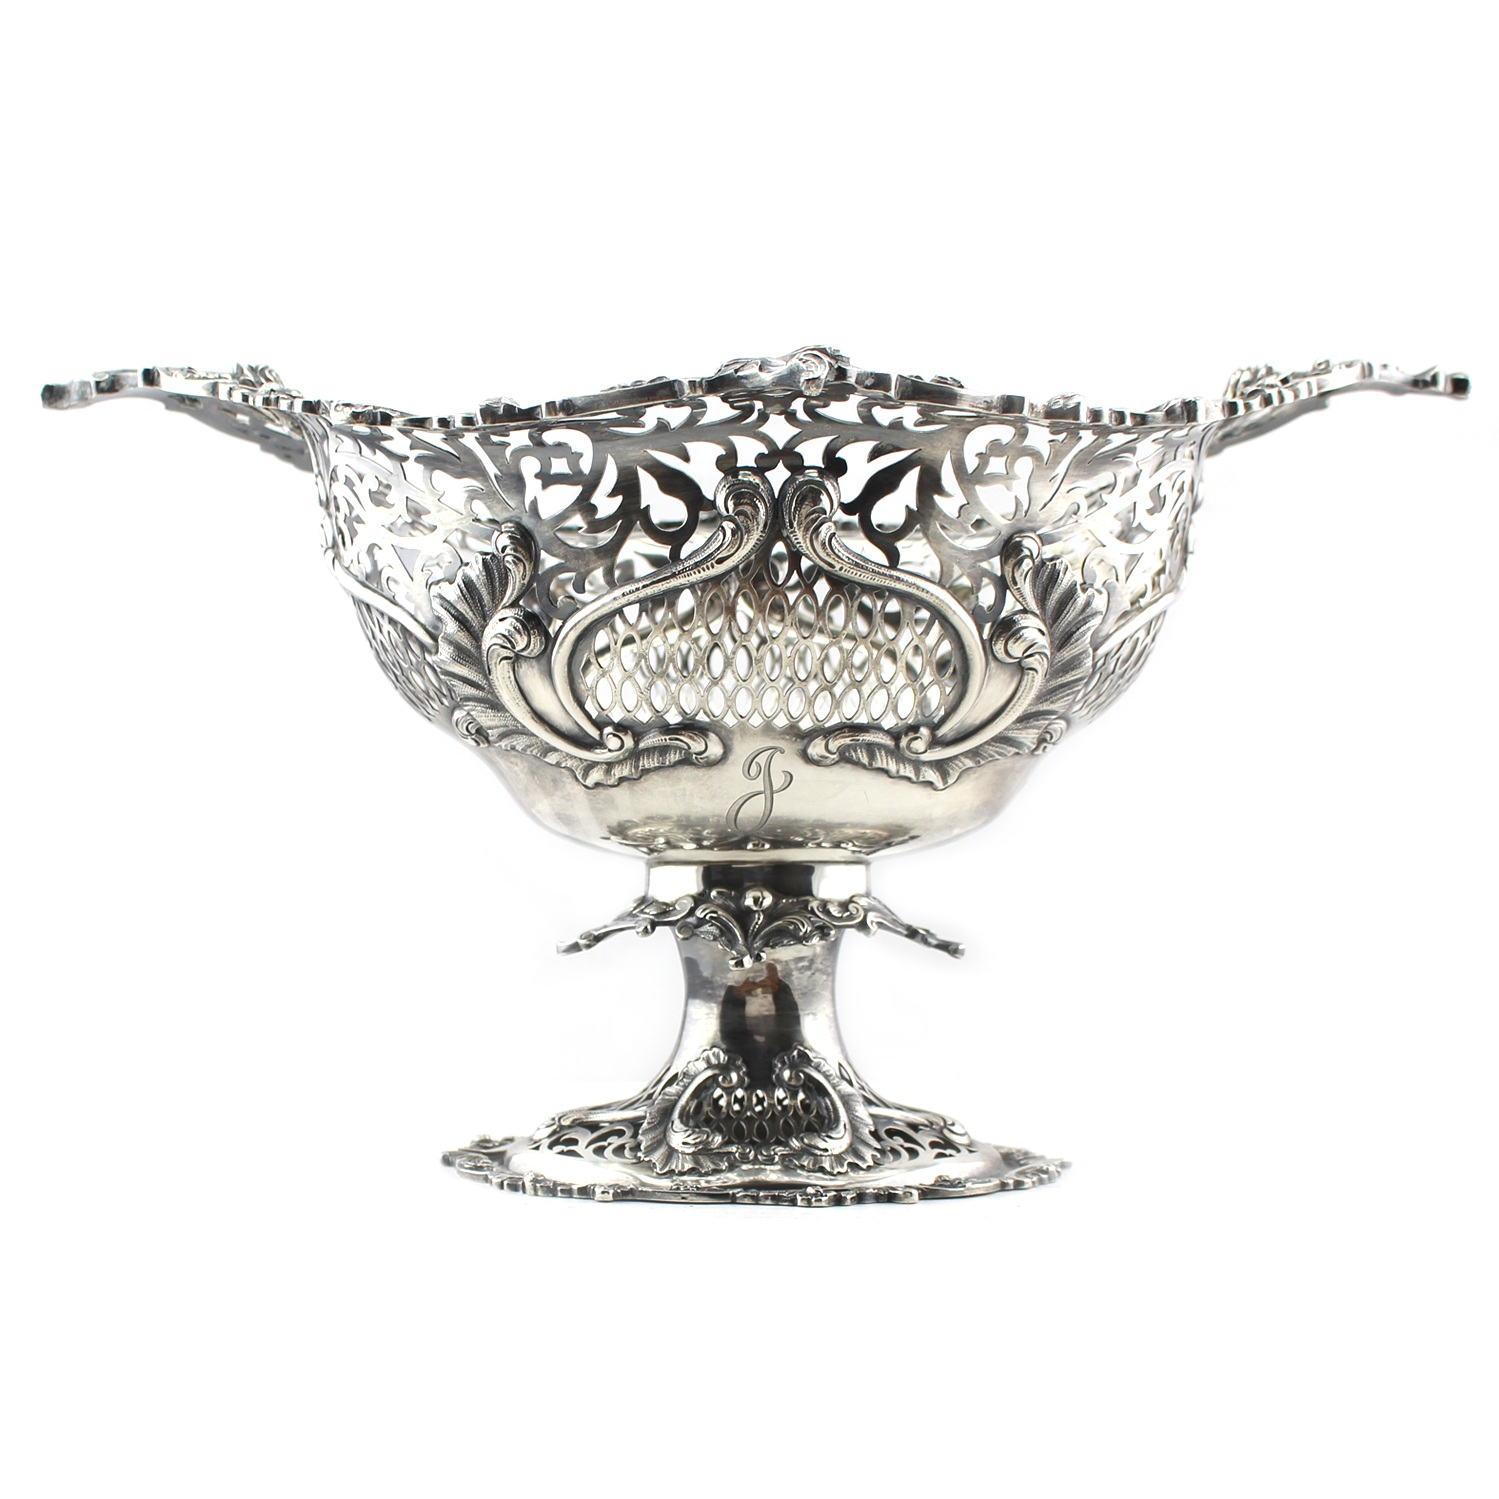 Victorian Sterling Silver Footed Basket with Pierced Decorations, London 1890